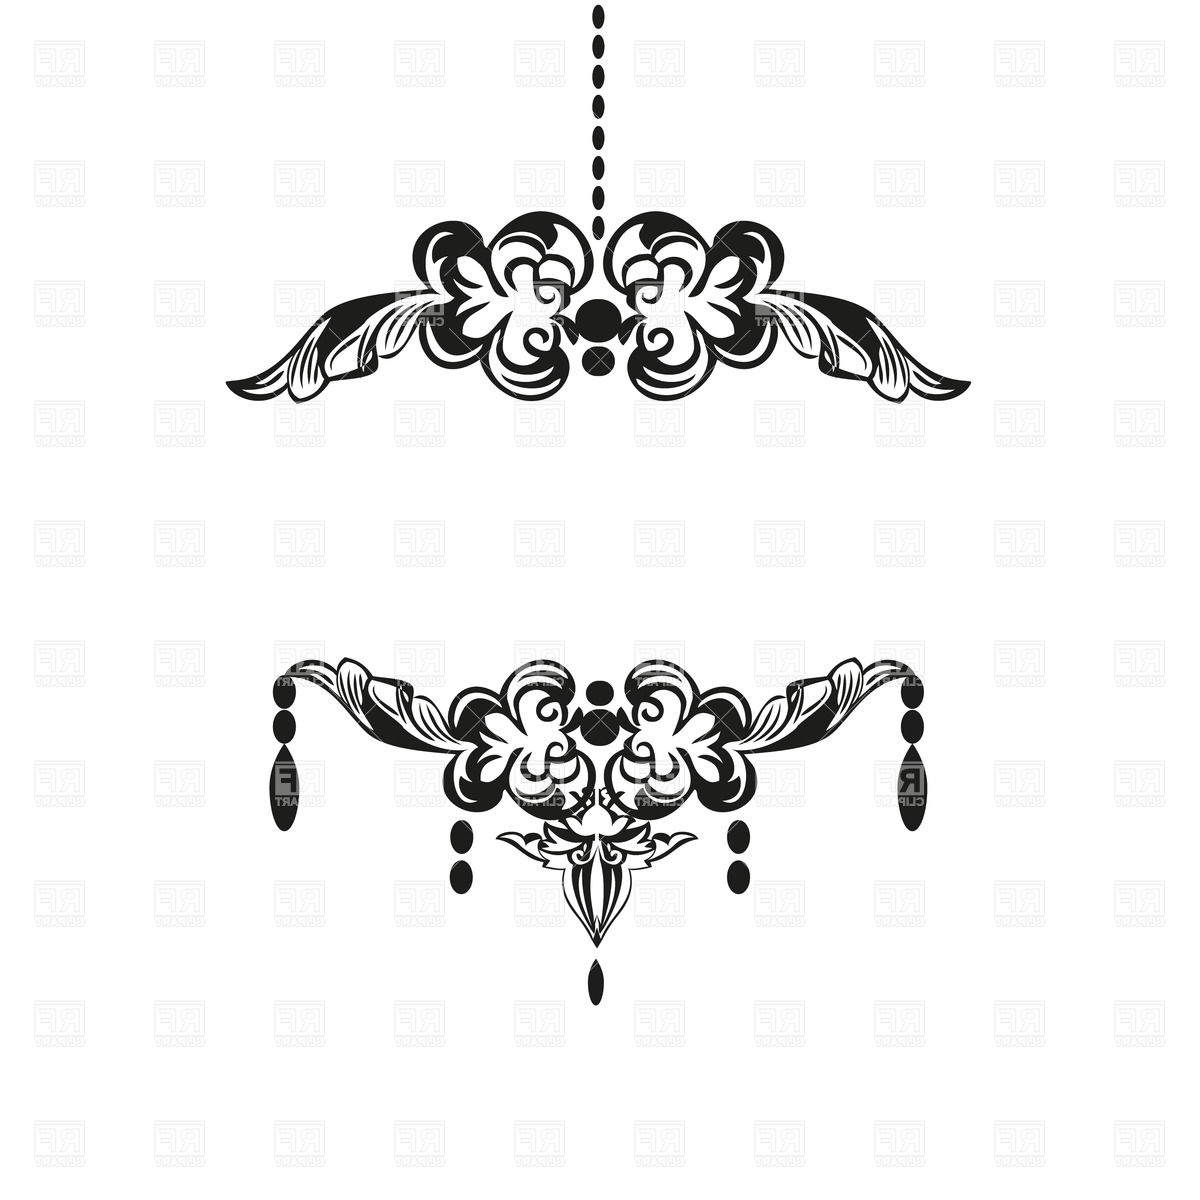 Vintage Black Chandelier Intended For Most Popular Black Vintage Chandelier Silhouette Royalty Free Vector Clip Art (View 18 of 20)